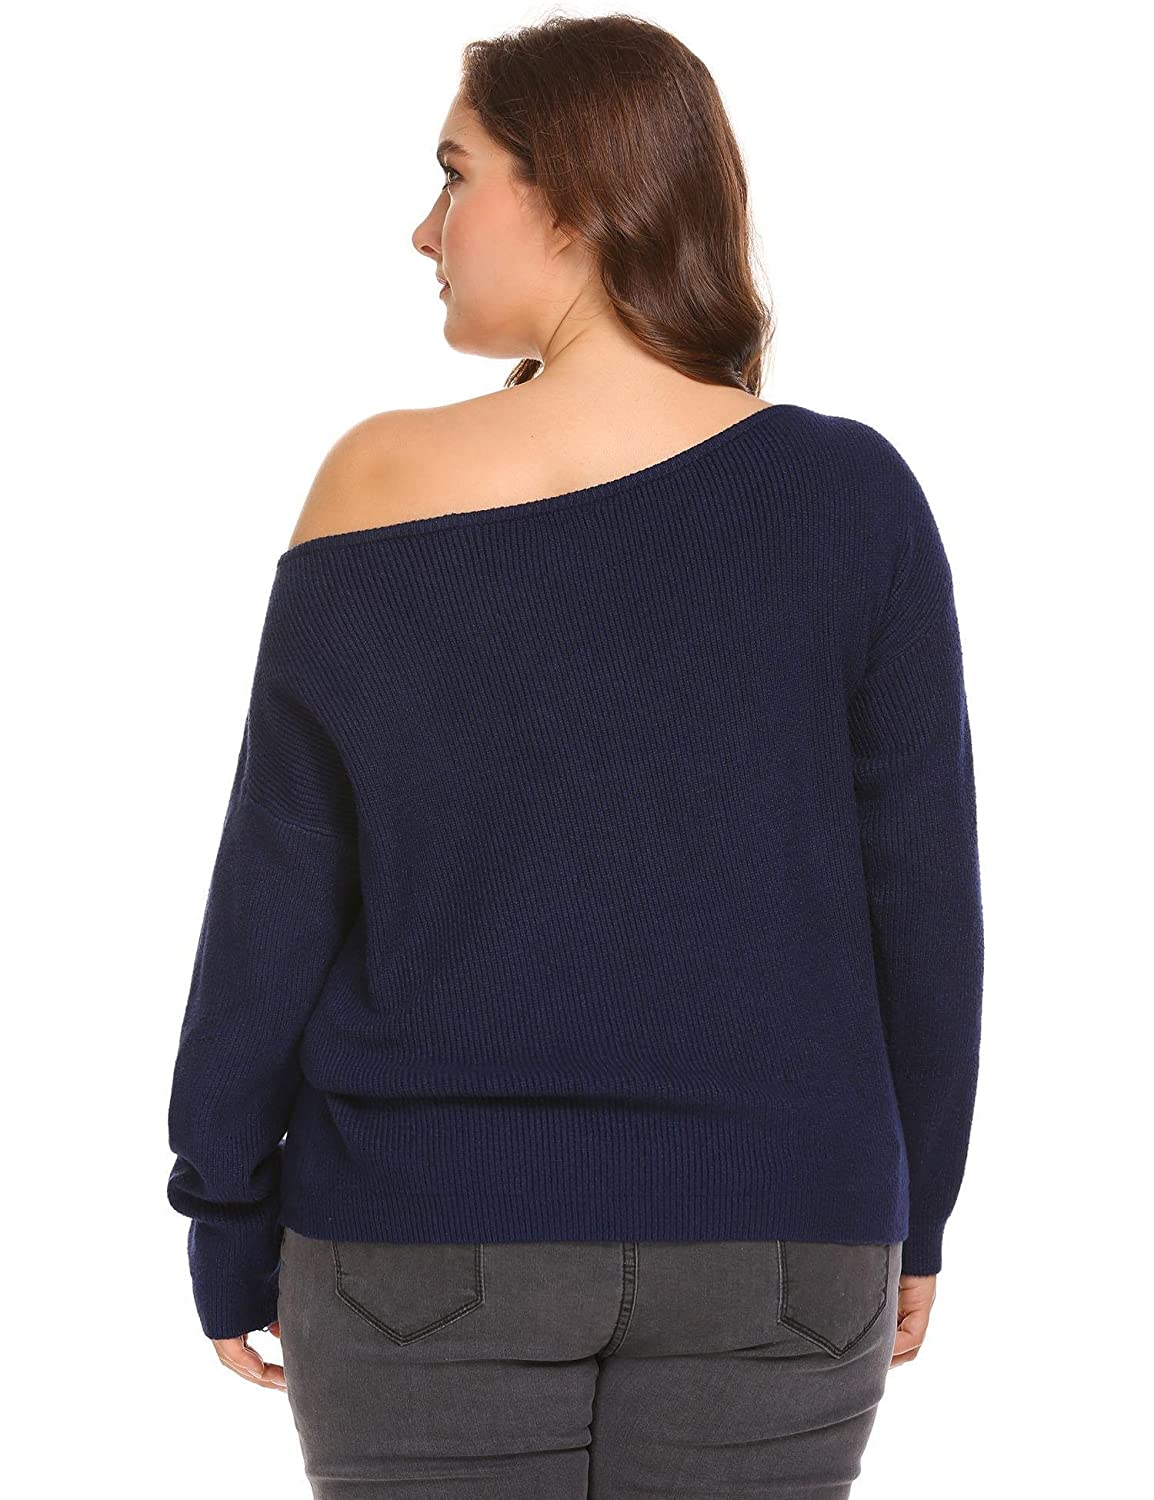 2017fecececd VPICUO Womens Plus Size Sweater Cold Shoulder Knit Tops Sexy Off Shoulder  Slouchy Oversized Pullover Sweaters at Amazon Women s Clothing store